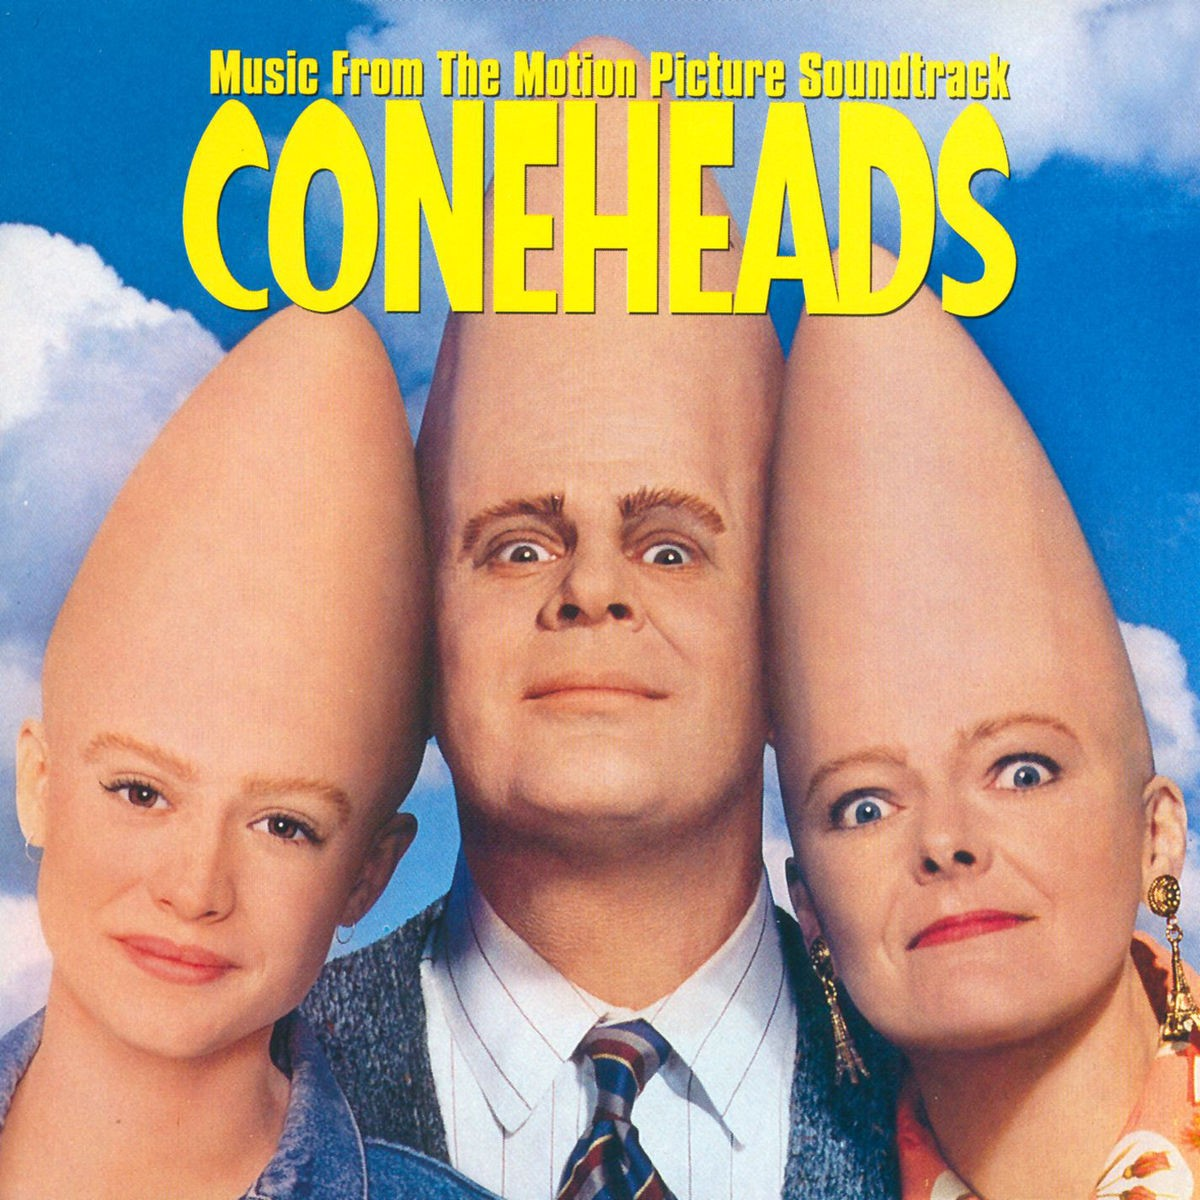 Coneheads (Music from the Motion Picture Soundtrack) VINYL - 9362490393